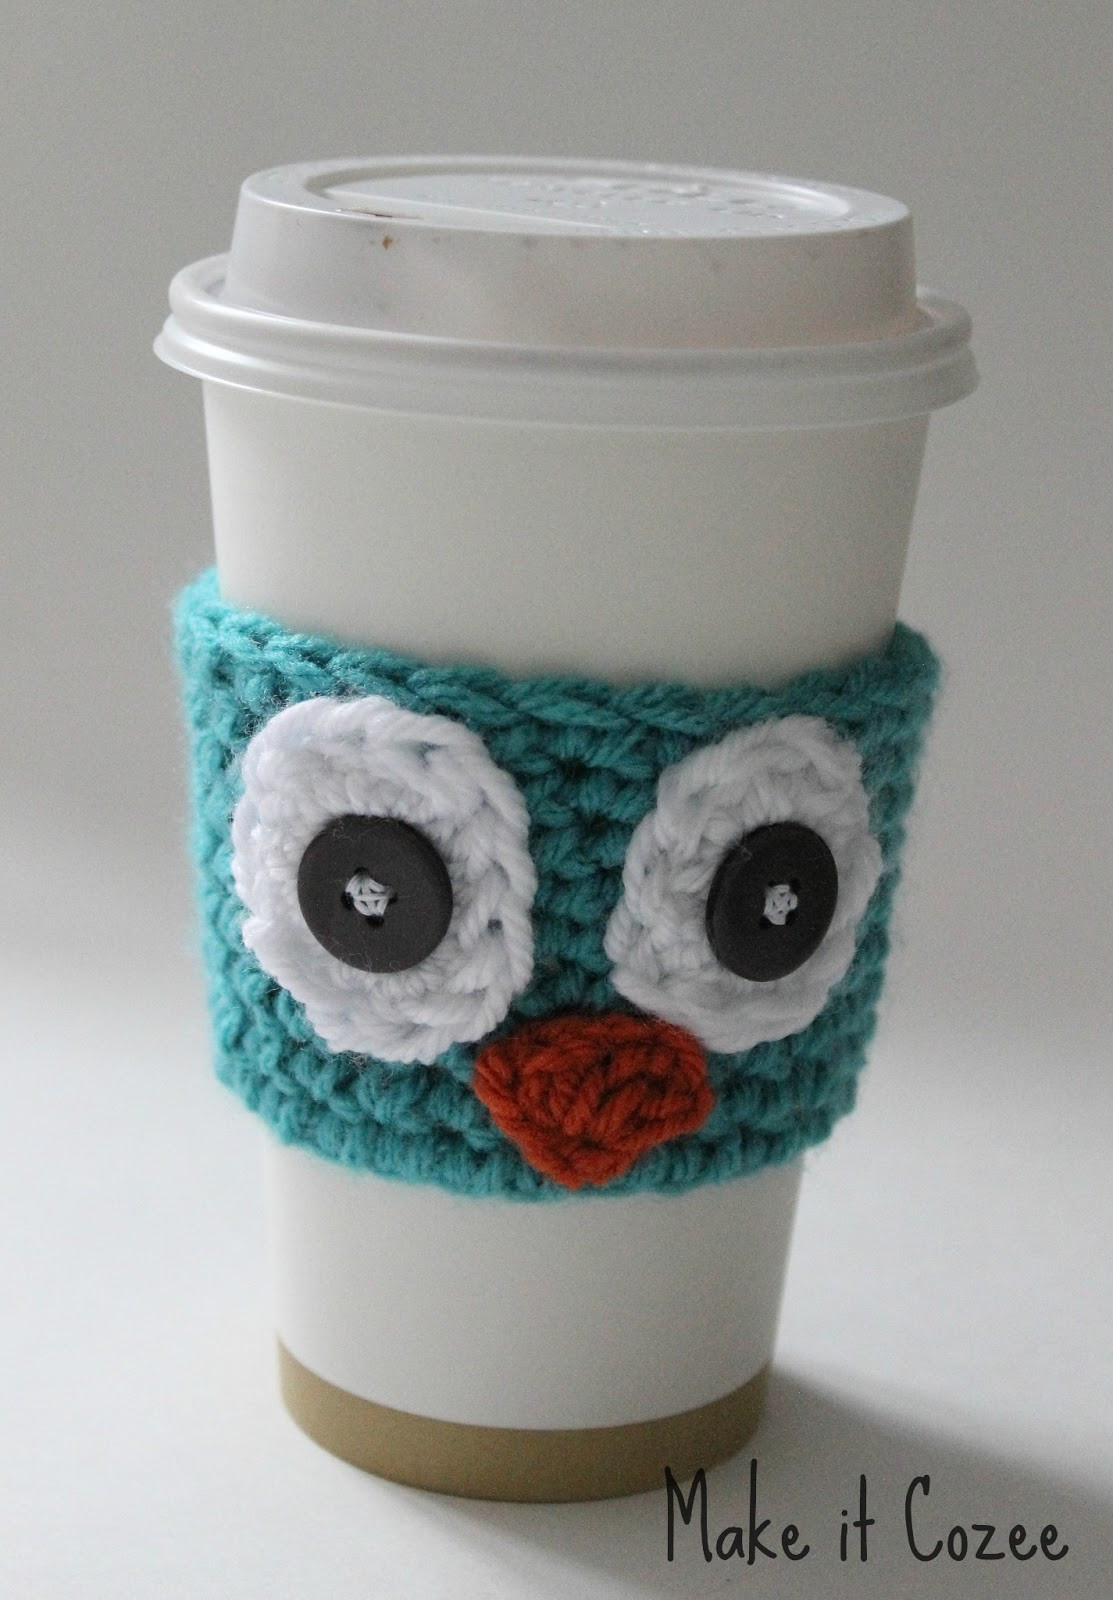 Crochet Coffee Cup Cozy Inspirational Make It Cozee Crochet Owl Coffee Cozy Of Crochet Coffee Cup Cozy Luxury Happy Holidays Handmade Gift Idea Crochet Heart Coffee